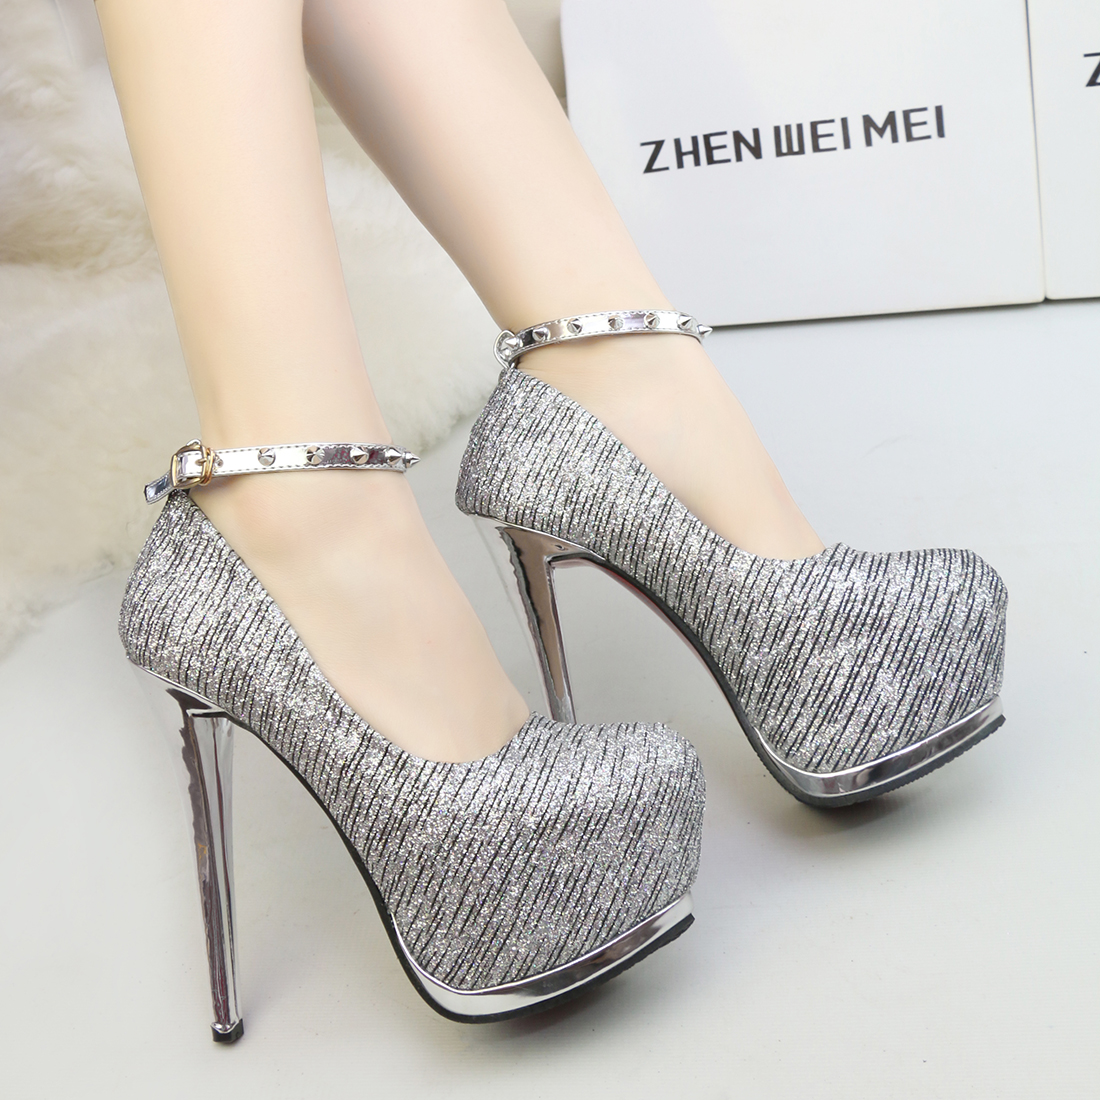 0f54bcd6b7ad Striped Party Ankle Strap Women Wedding Shoes Sexy Strappy Super High Heel  Shoes Crystal Buckle Rivet Stiletto Club Shoes-in Women s Pumps from Shoes  on ...